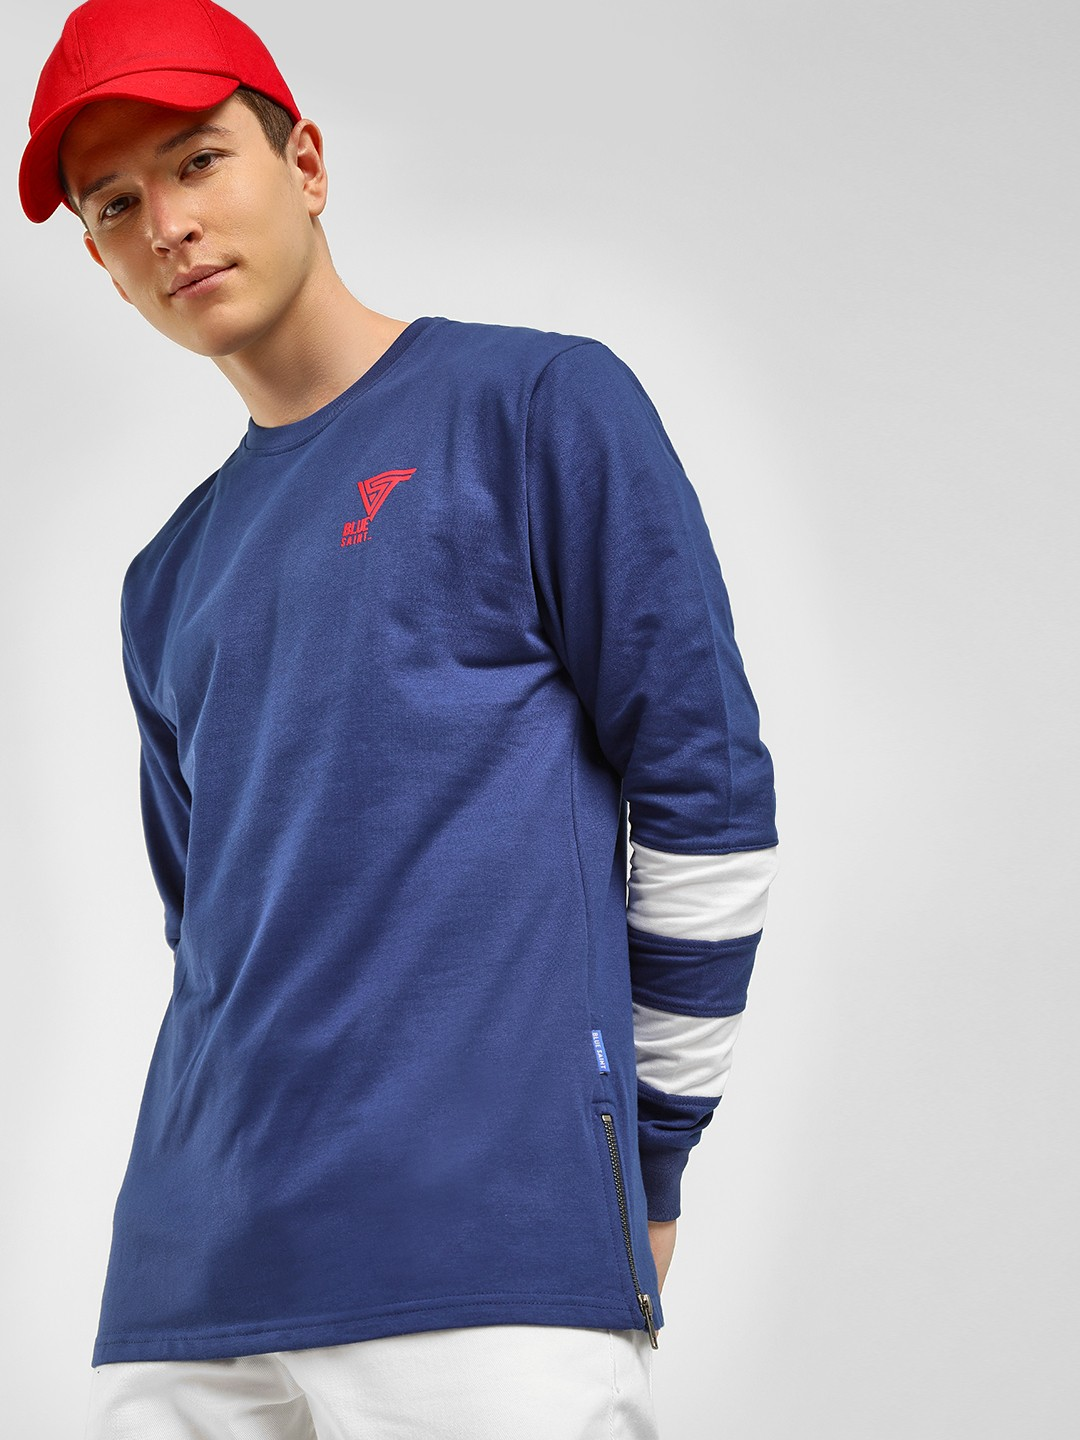 Blue Saint Blue Striped Sleeve Sweatshirt 1